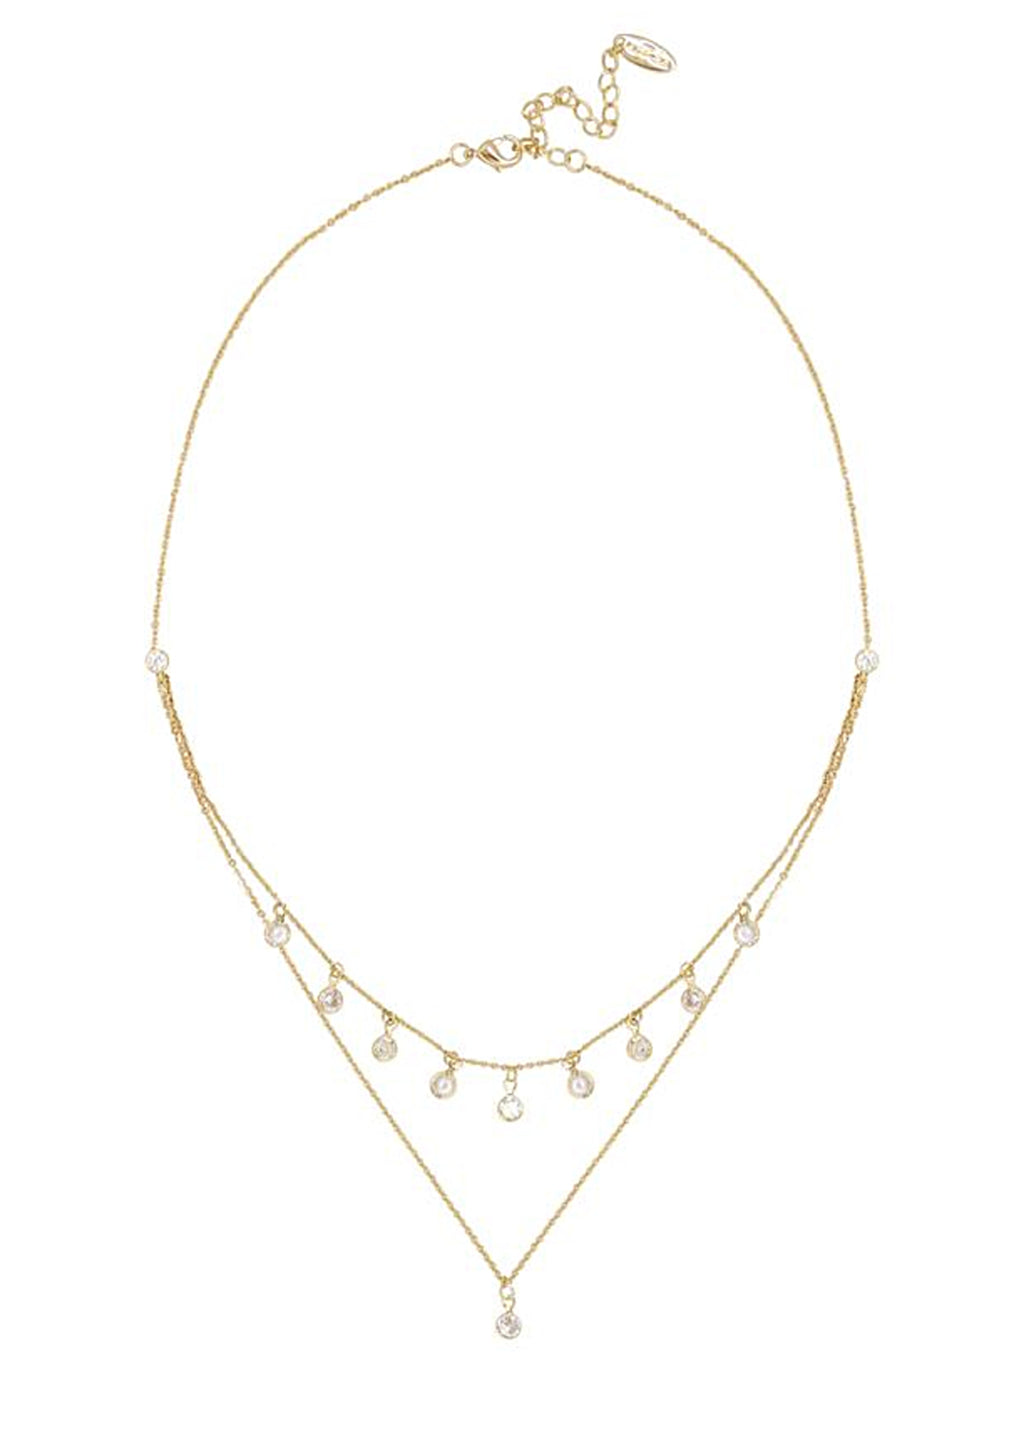 ETTIKA DREAMY DAINTY DOUBLE CHAIN NECKLACE WITH CRYSTALS